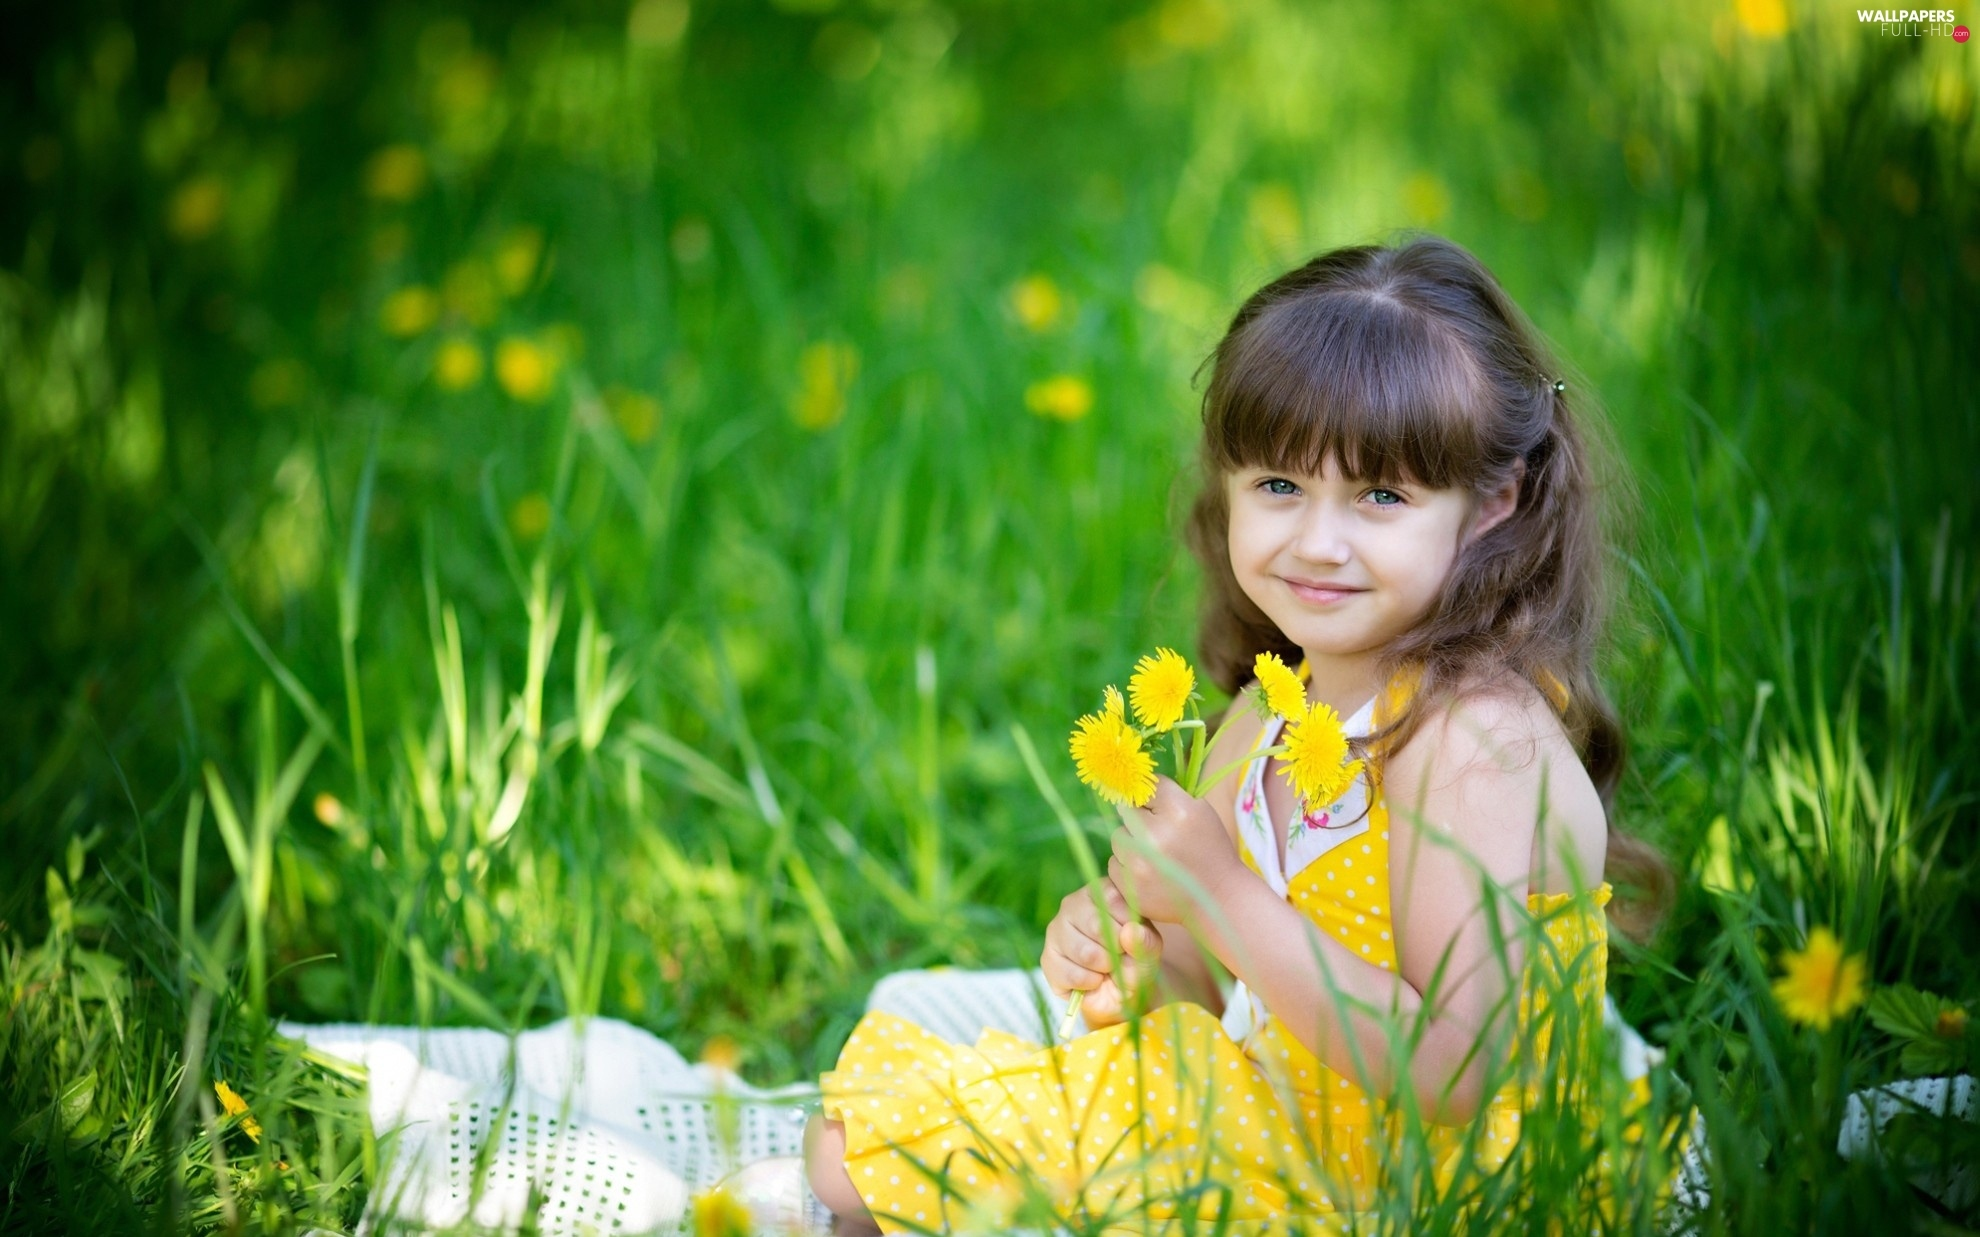 Meadow, flowers, smiling, girl